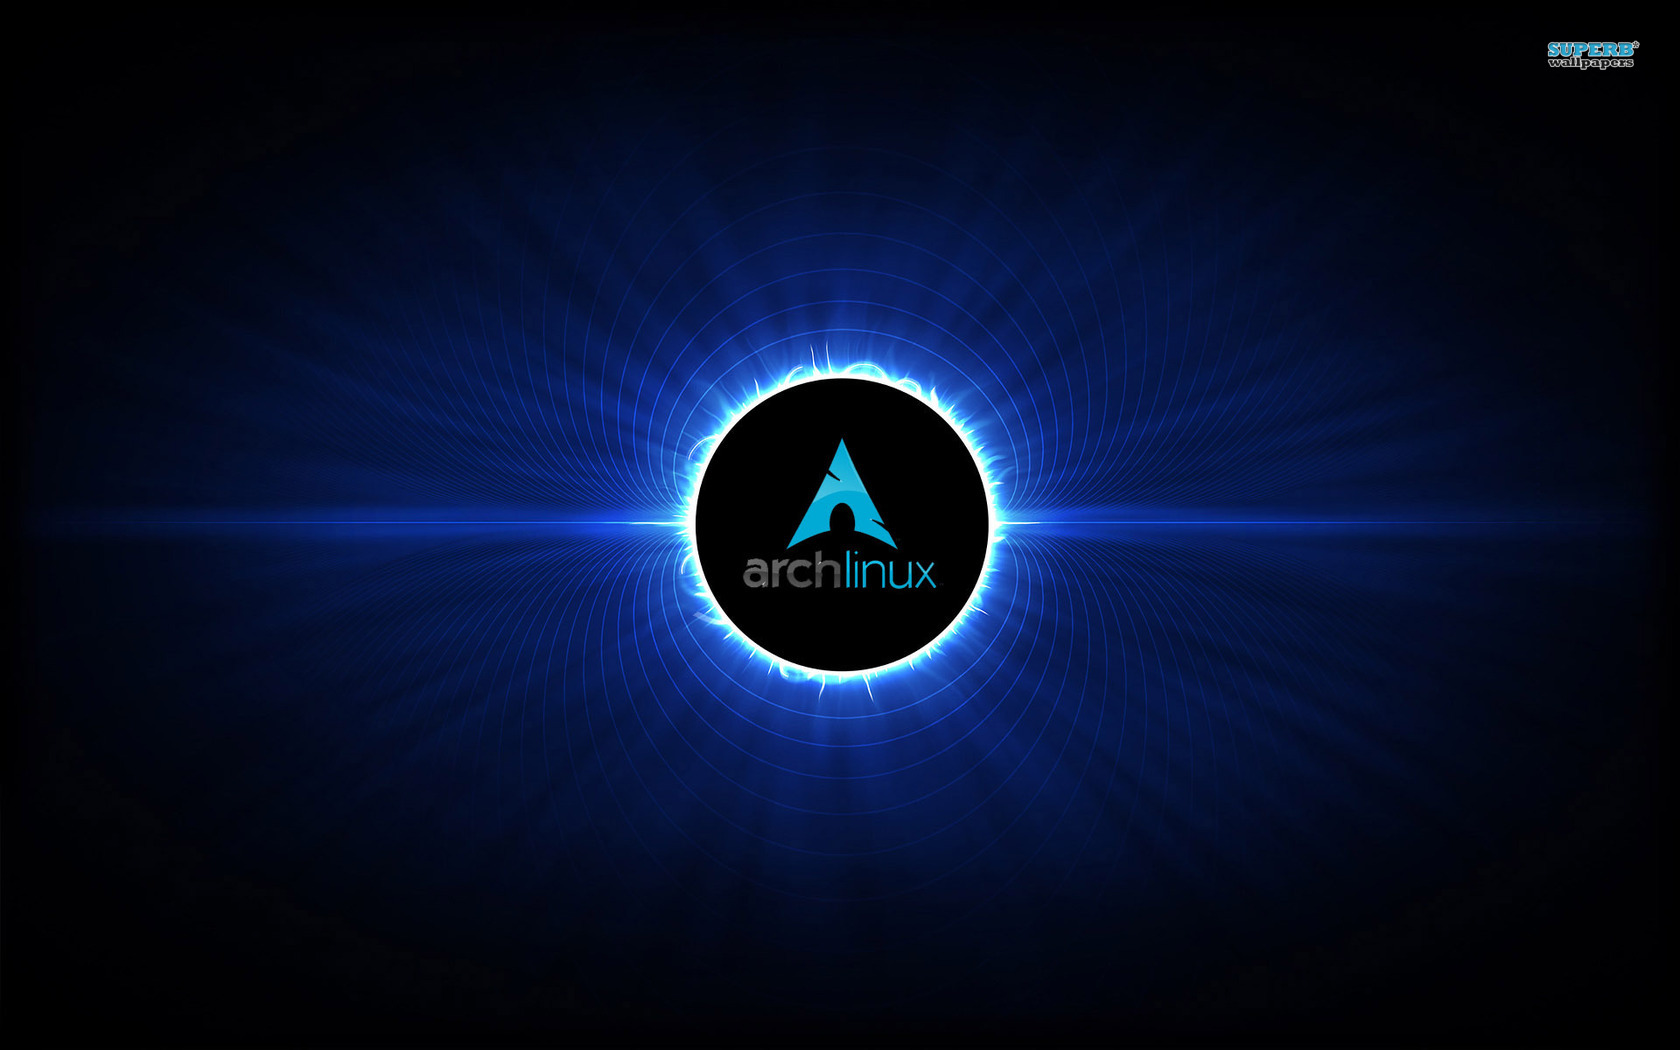 Arch Linux Wallpapers Download HD Wallpapers 1680x1050